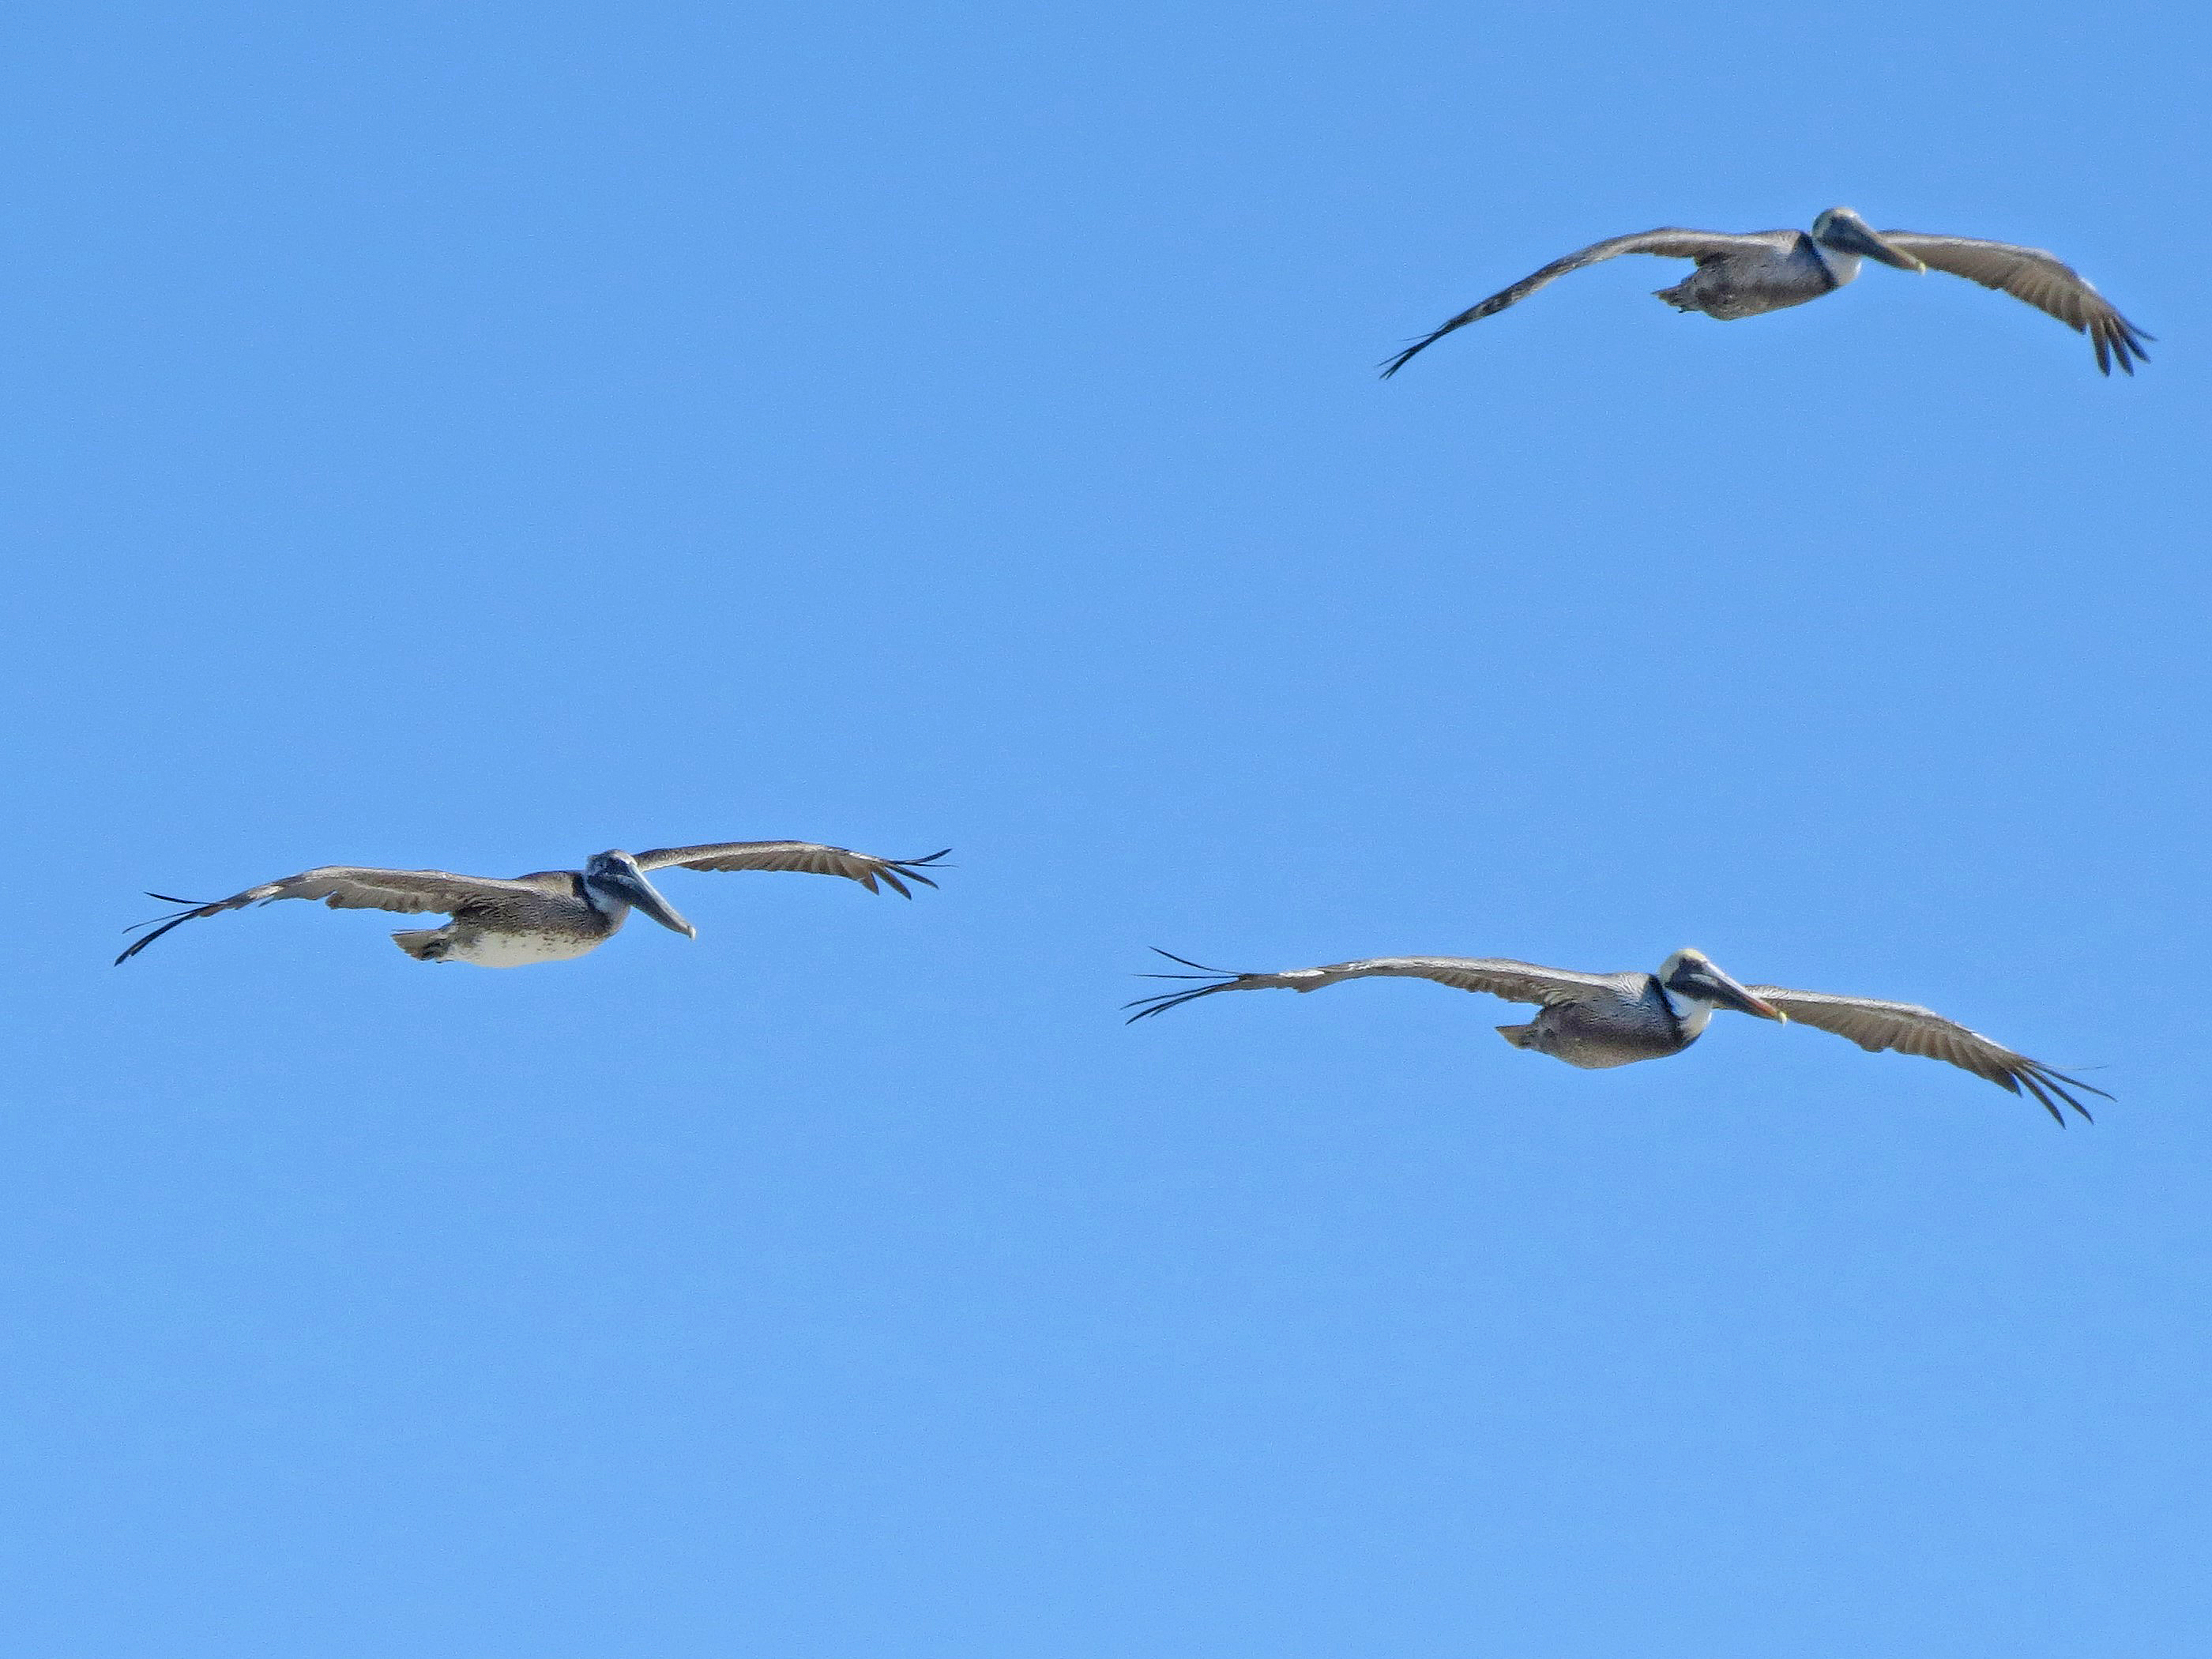 trio of flying pelicans